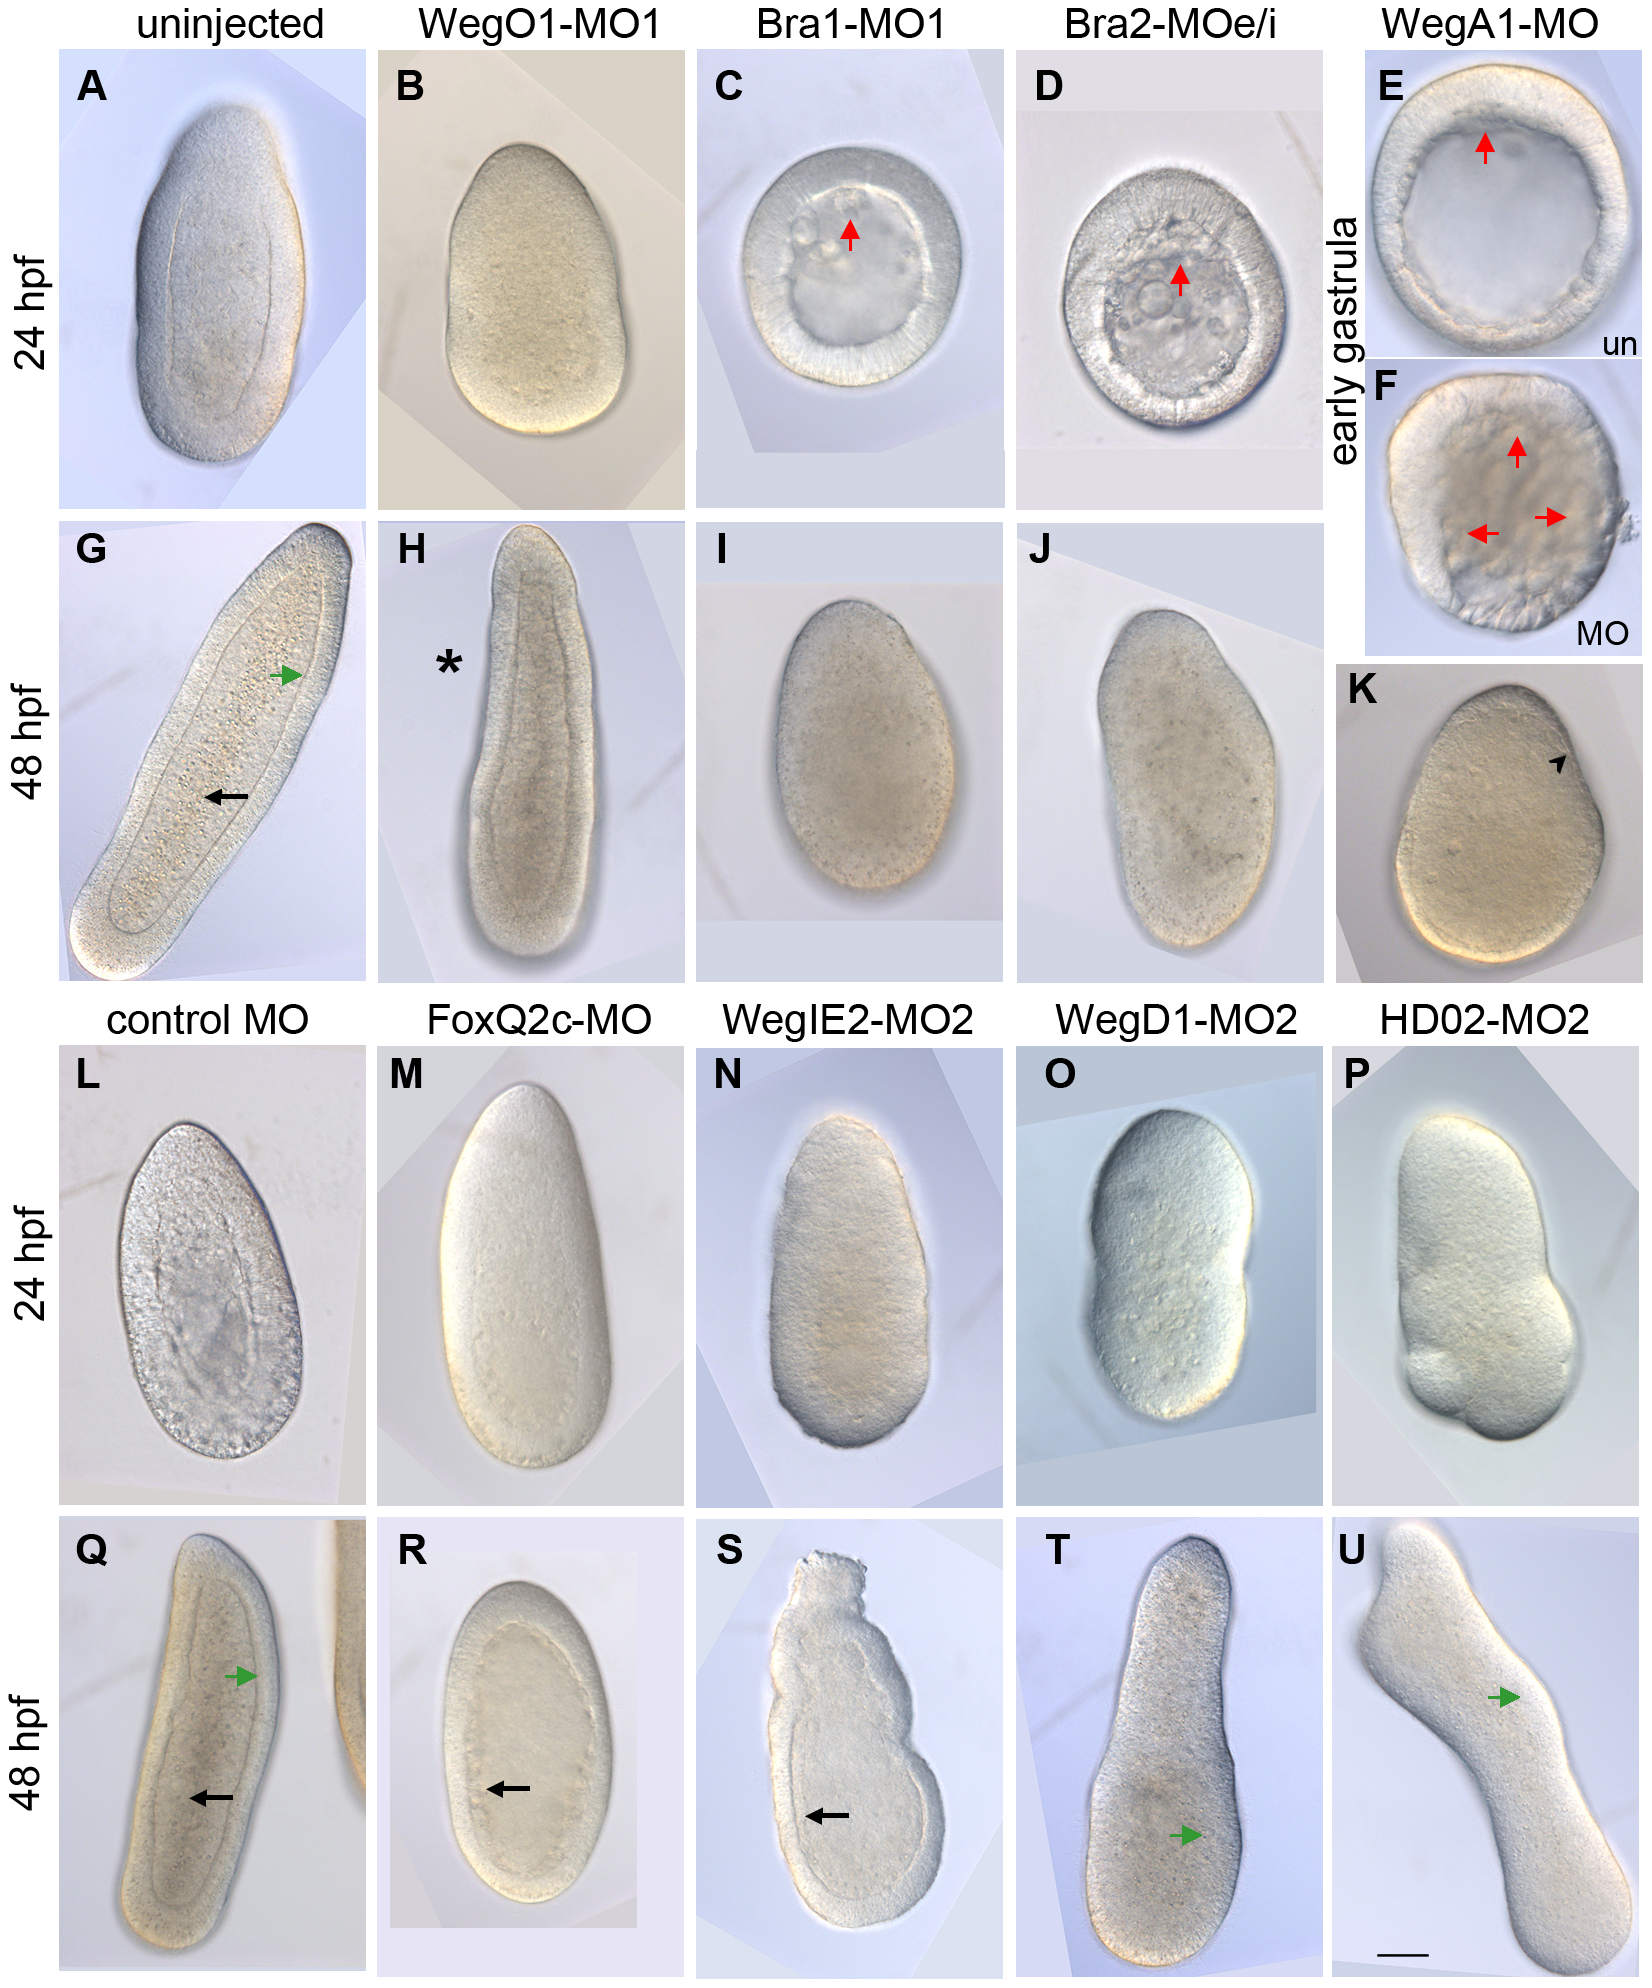 Morpholinos targeting conserved and cnidarian-specific transcripts disrupt development.